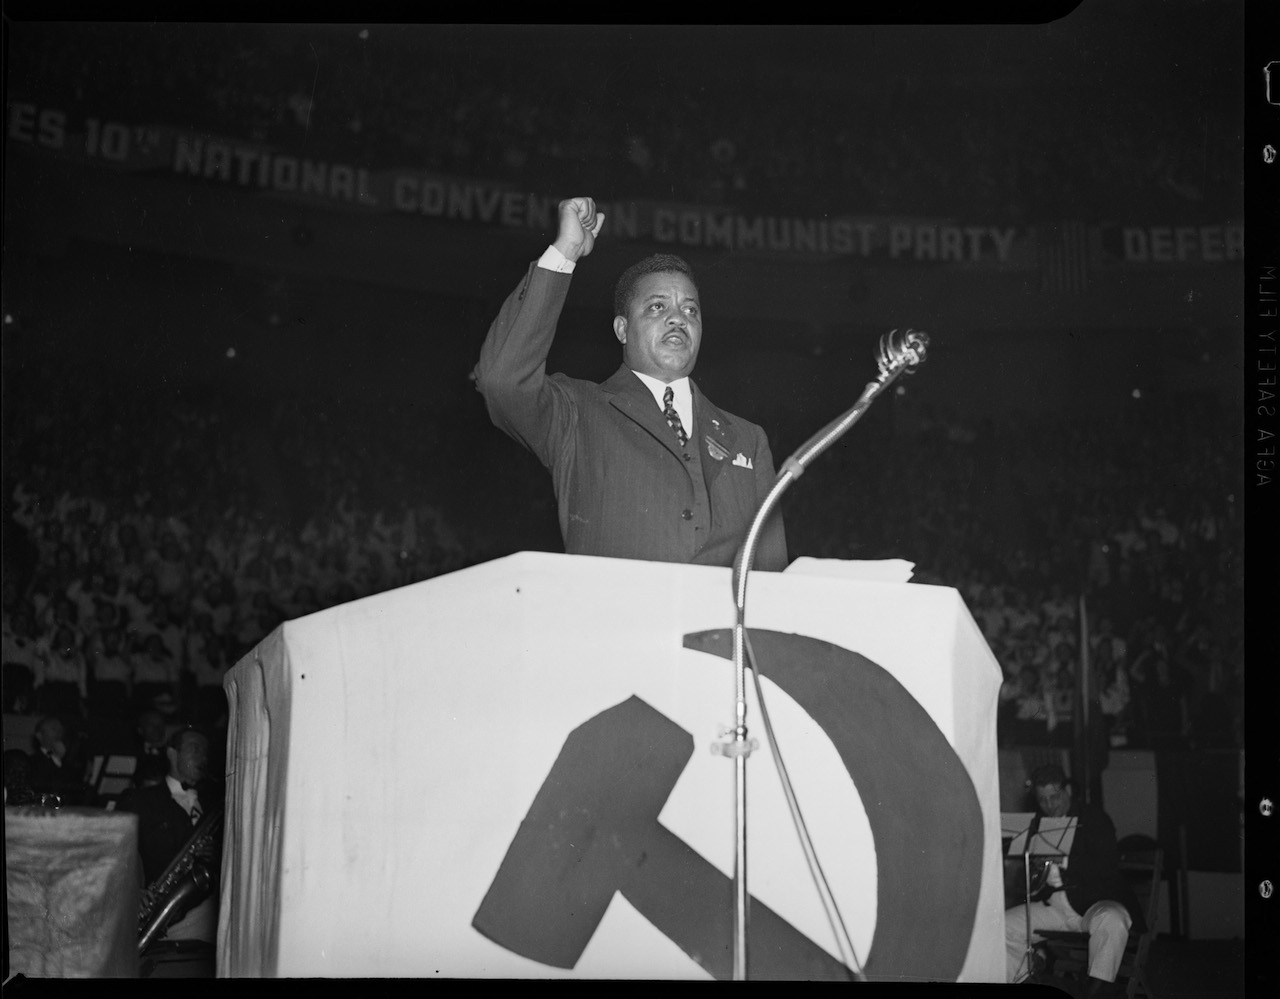 James W. Ford speaking at a Communist Party rally in Madison Square Garden (May 26, 1938) (courtesy New York City Municipal Archives)